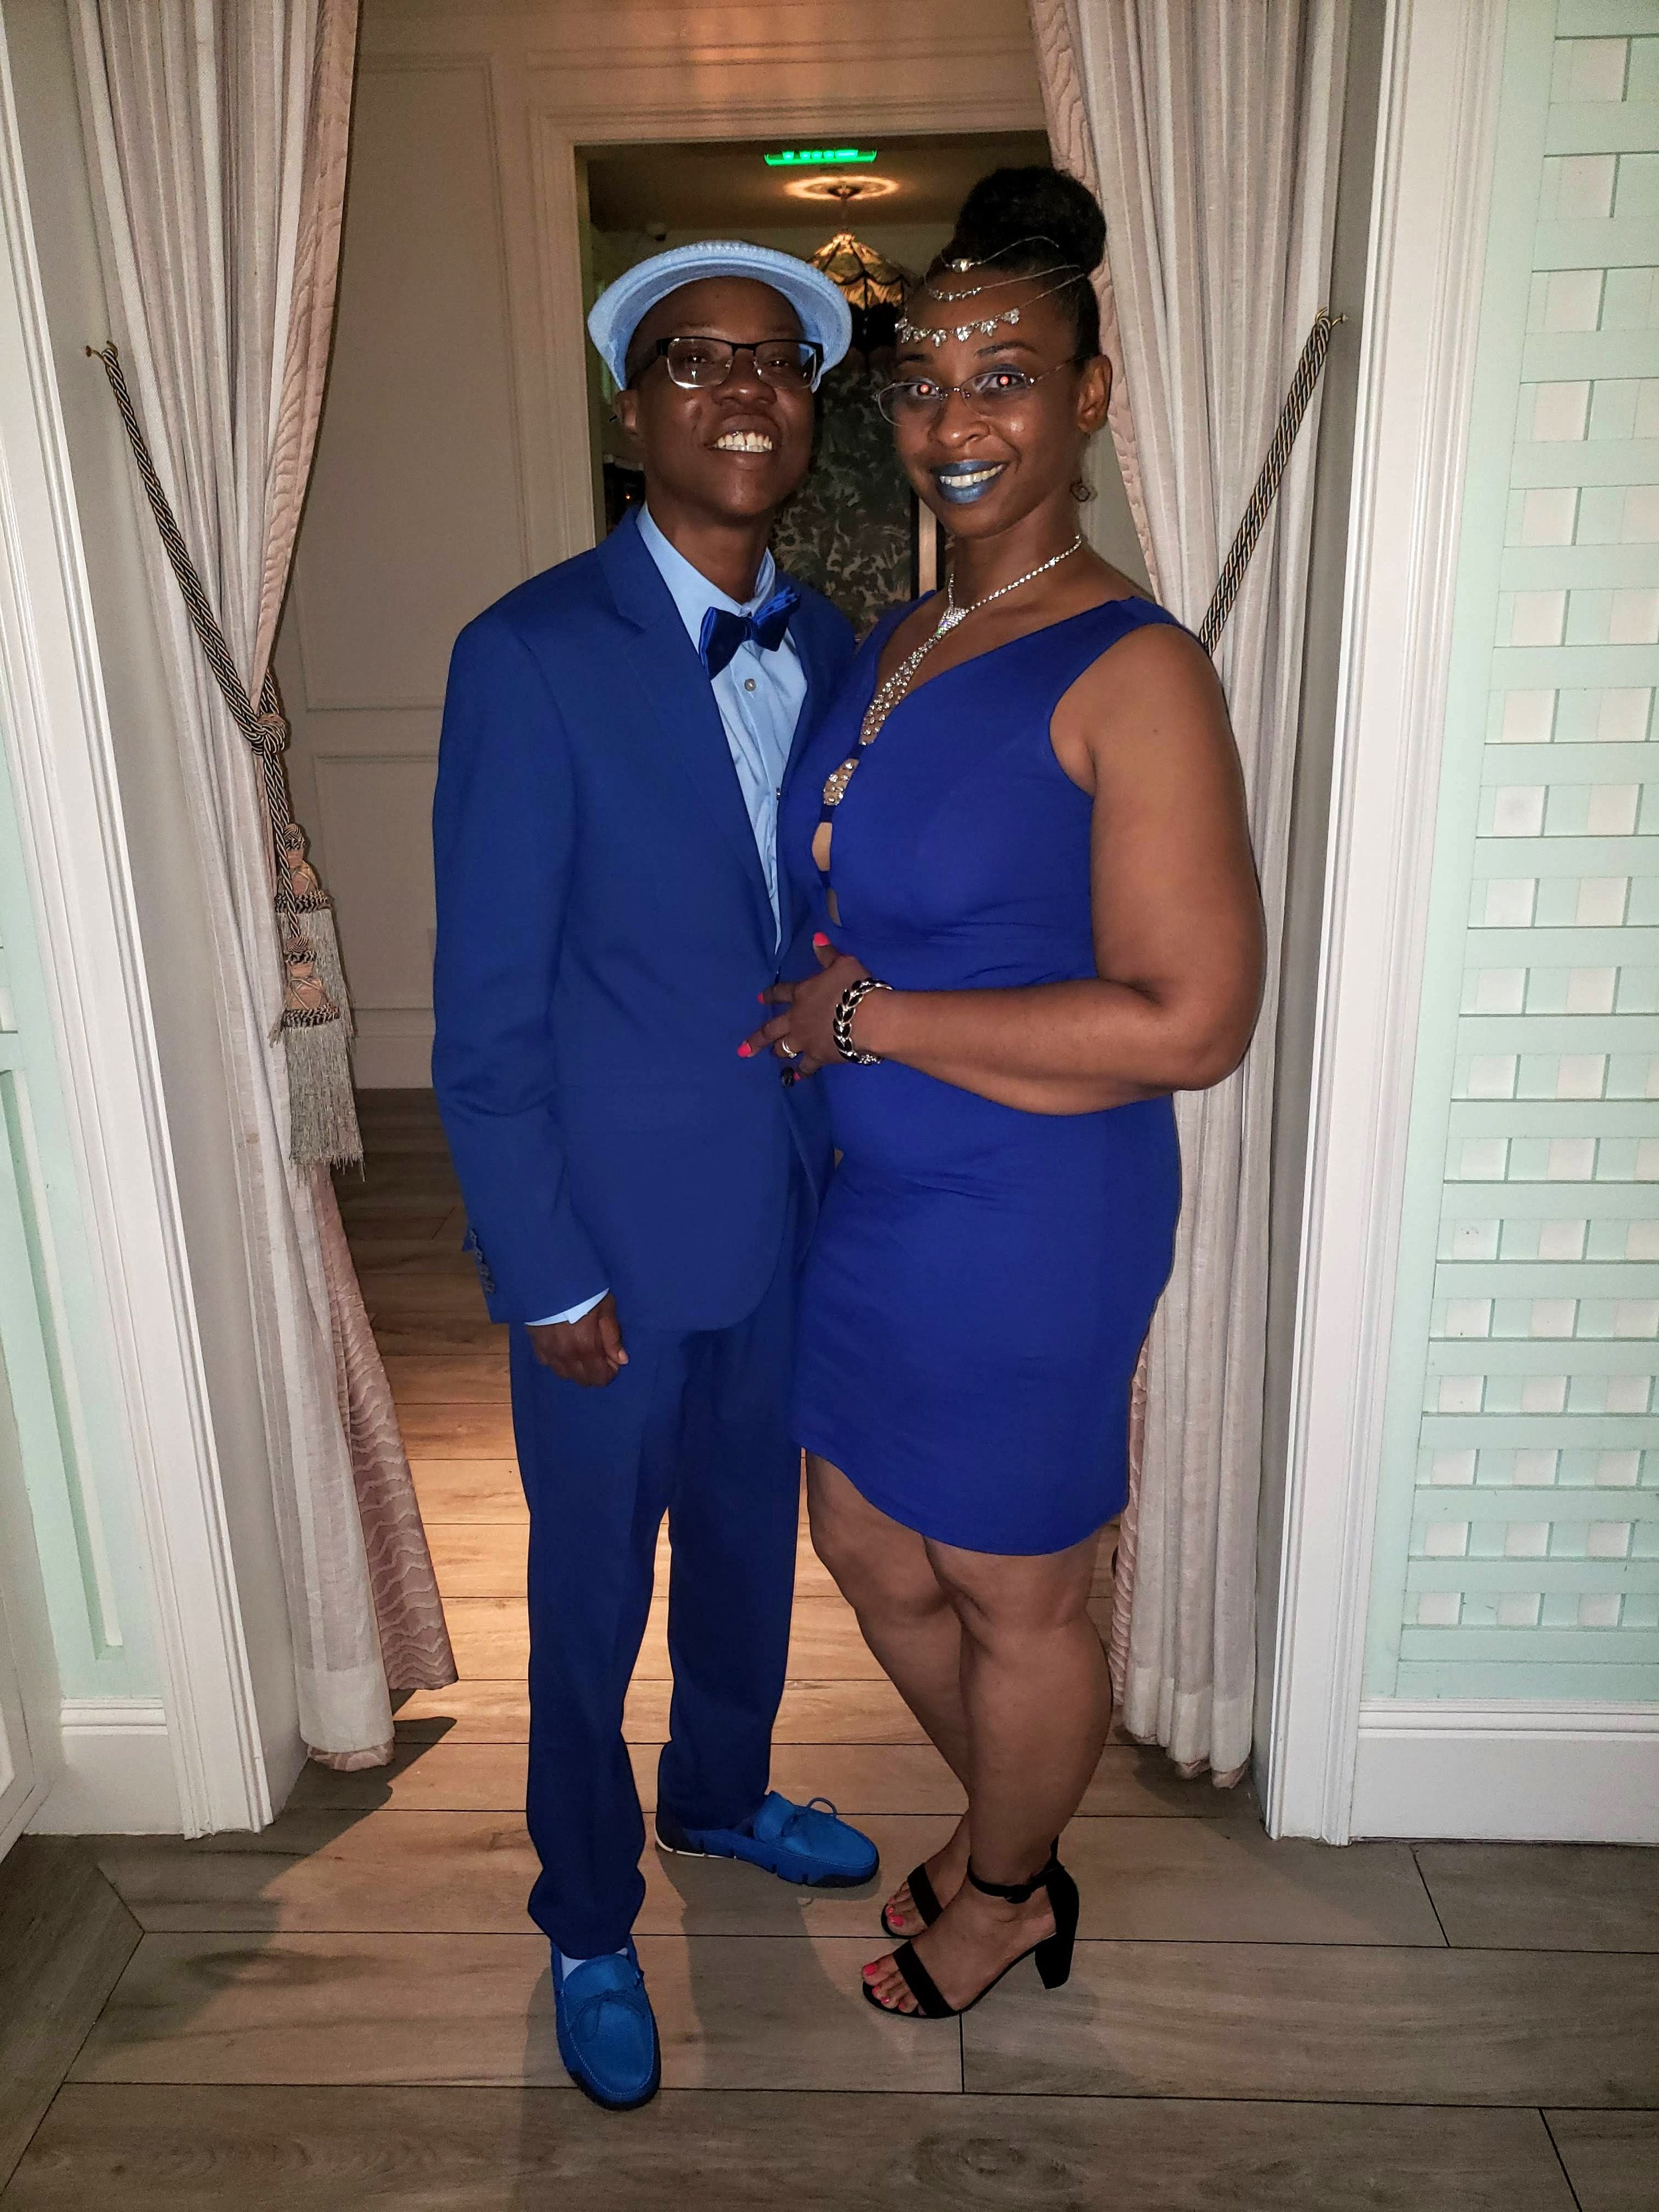 - FedFam4Life is a non-profit Sisterhood co-founded by Tray Johns, Executive Director and Foxxy Mason, President, both formerly incarcerated Black, Gay Veteran Women. The couple, who married in 2017, conceived FedFam4Life to address the urgent need for Black Female leadership in the social justice movement.